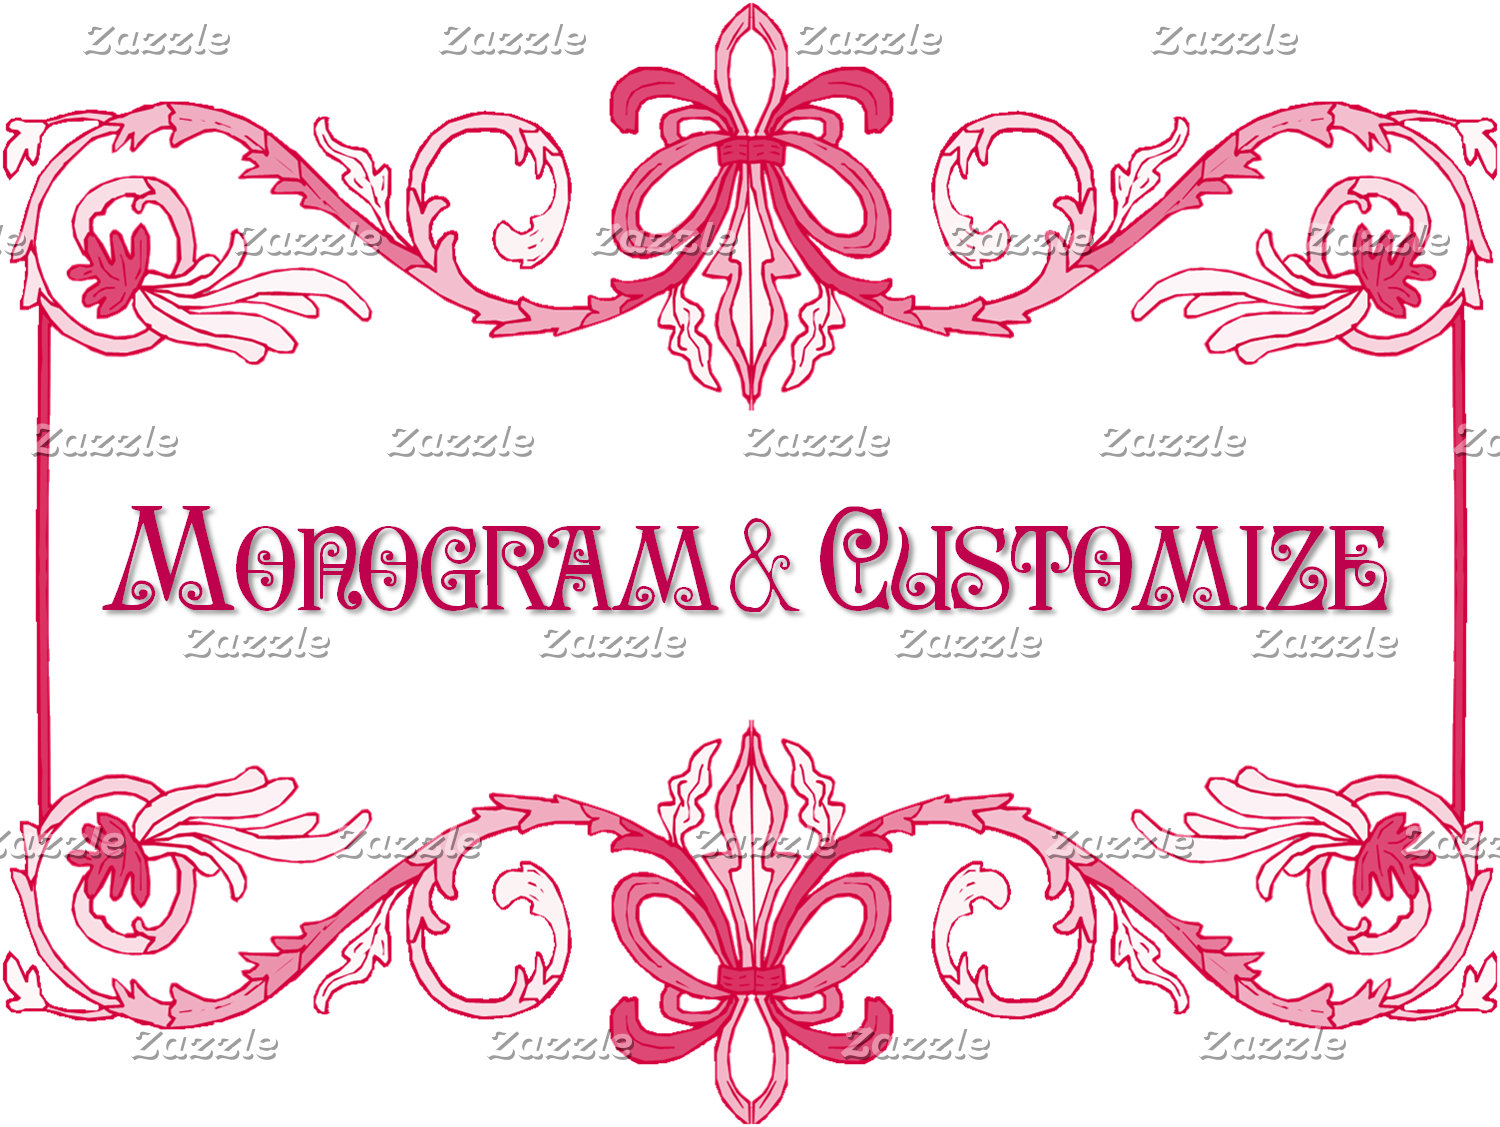 Monogram & Customize